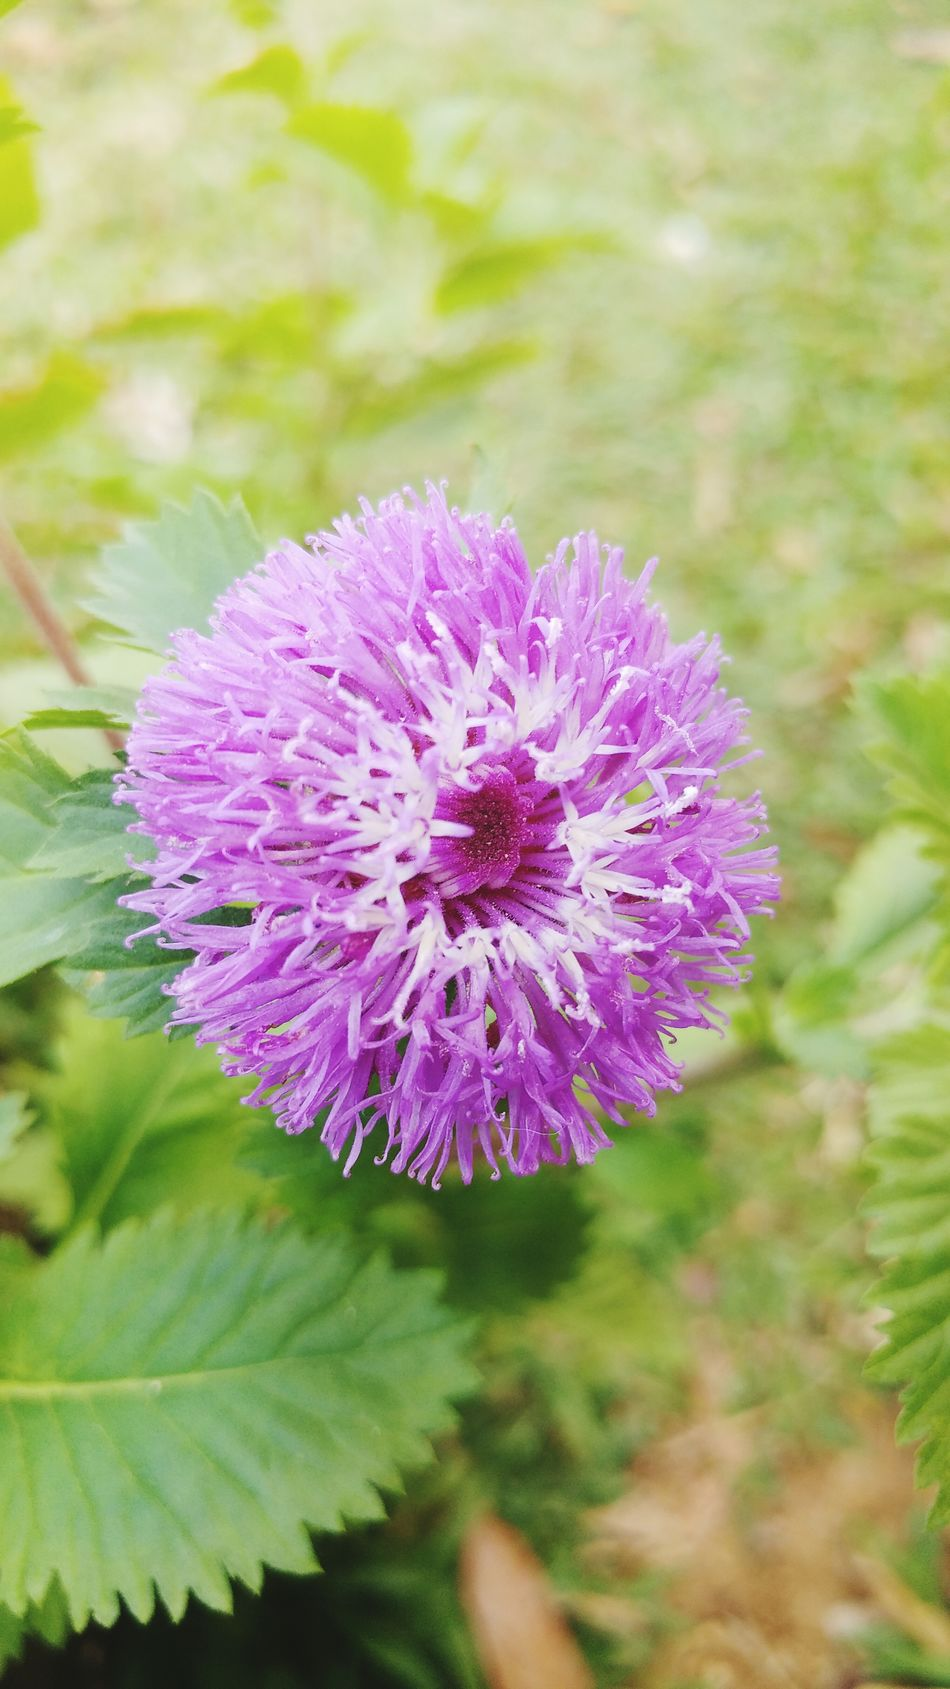 Flower Purple Nature Plant Growth Fragility Beauty In Nature No People Petal Flower Head Freshness Outdoors Close-up Day